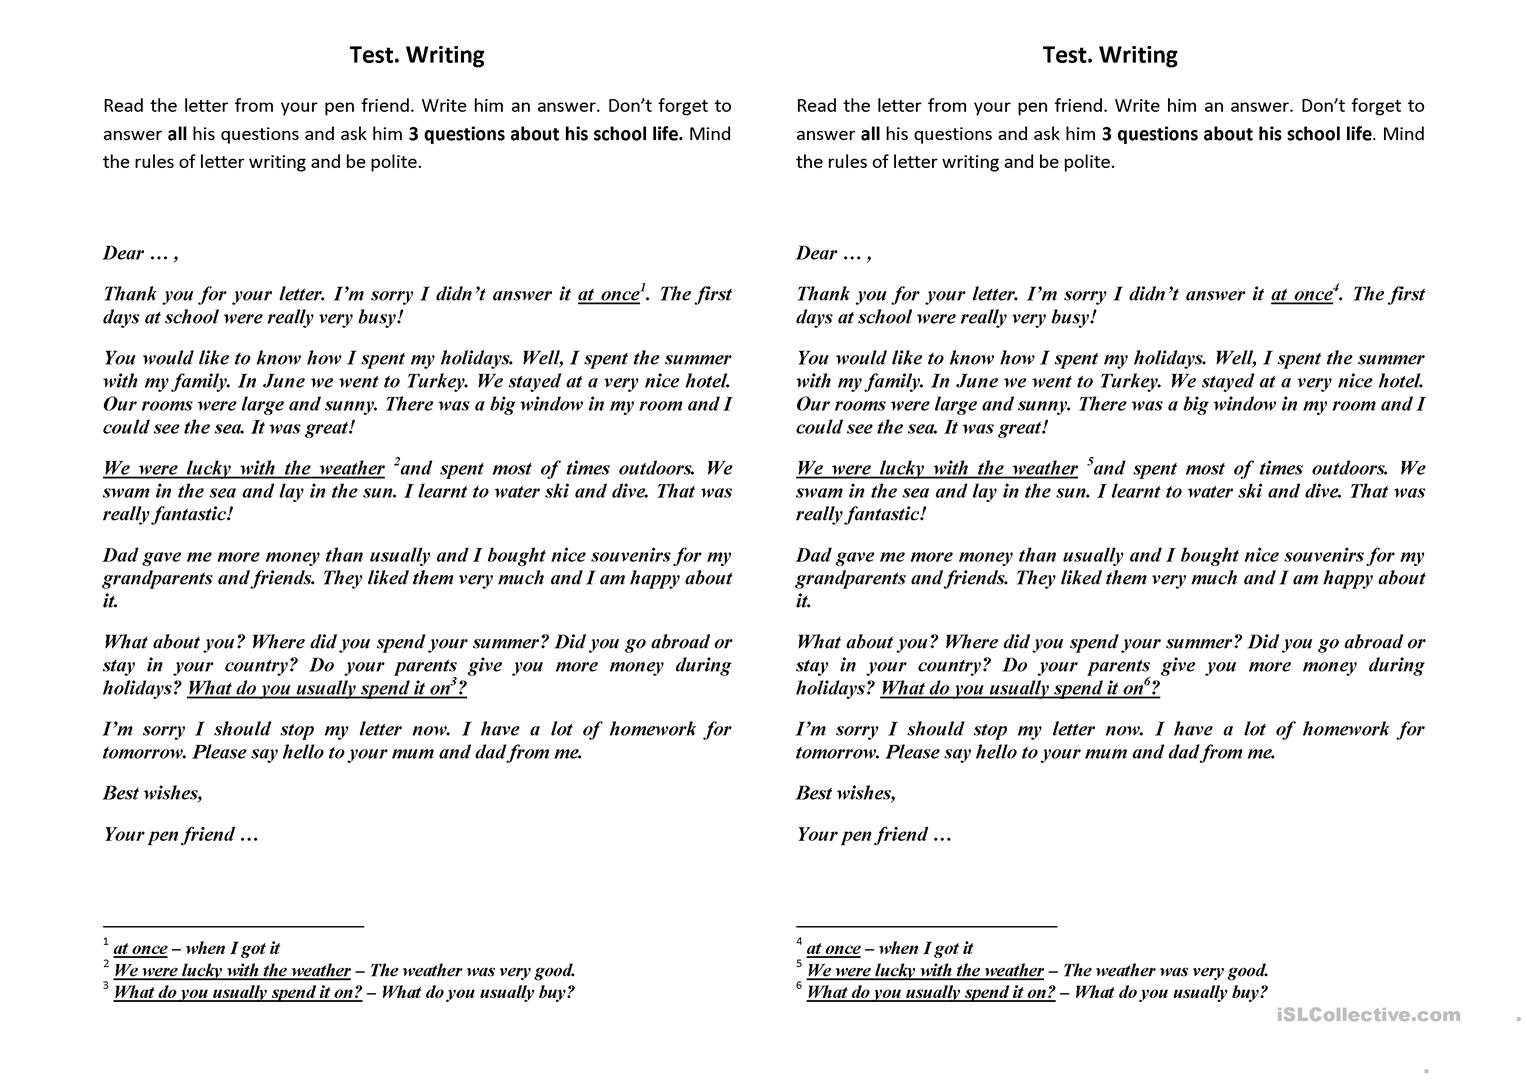 A Letter To Your Pen Friend Worksheet